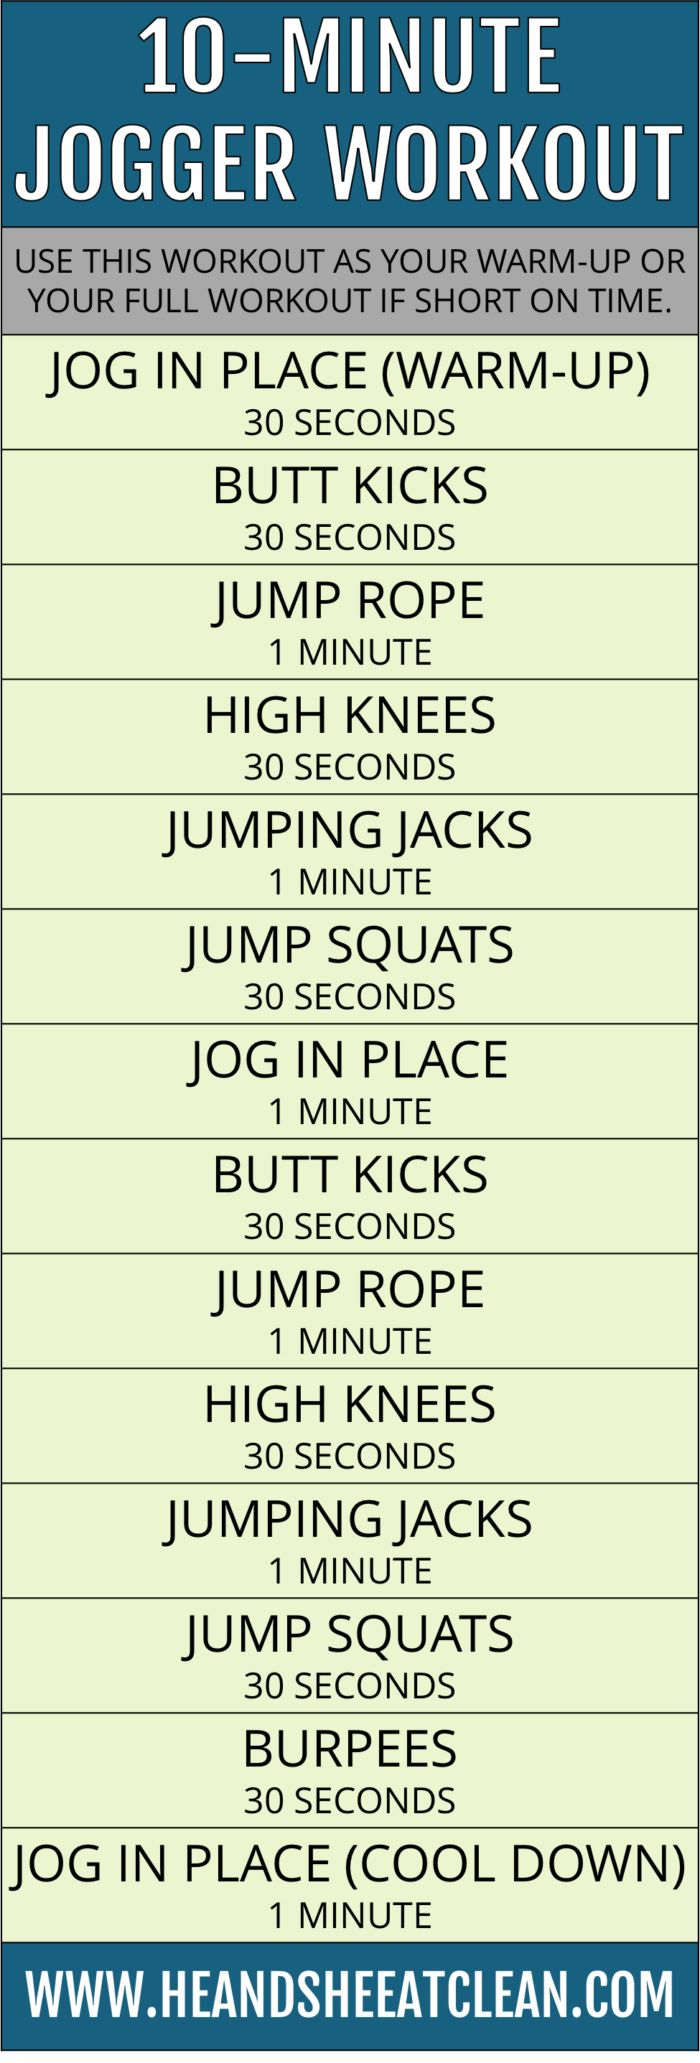 10-Minute Jogger Workout | He and She Eat Clean #sponsored by Champion